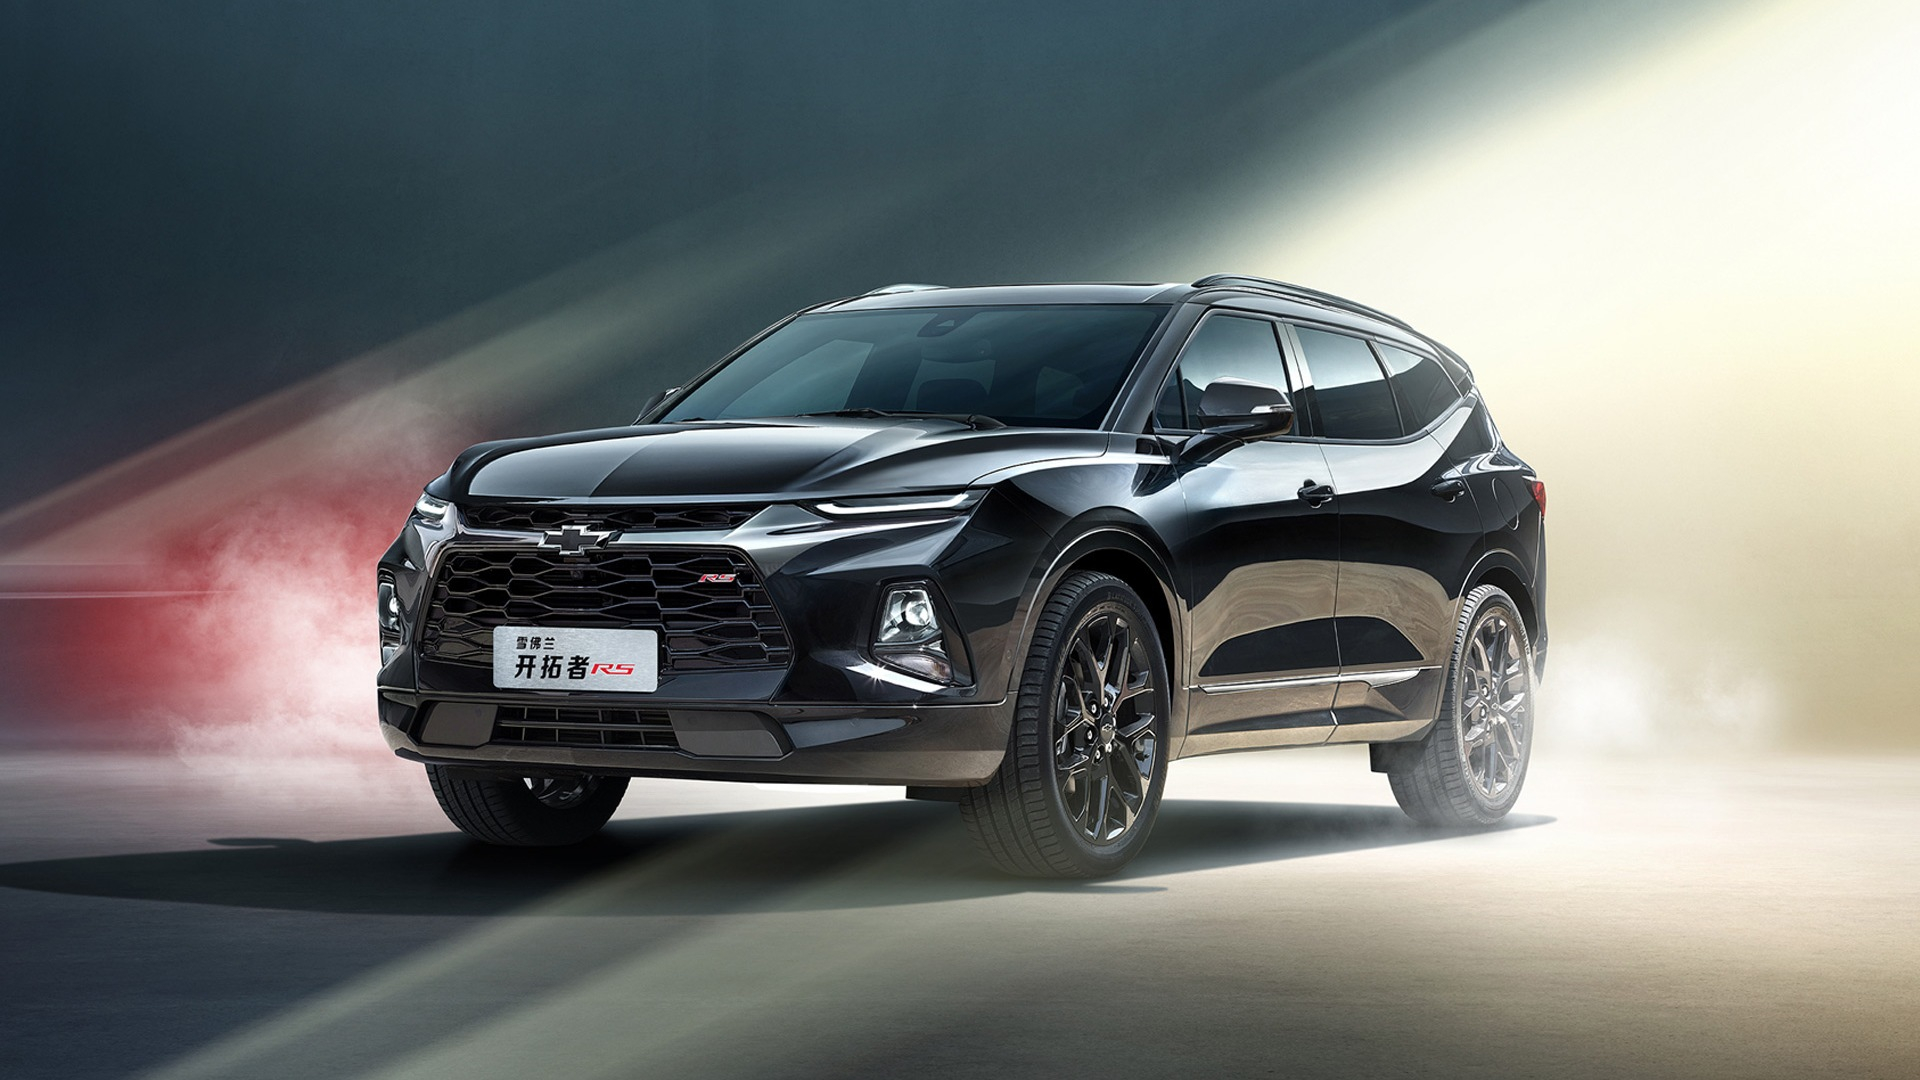 Chevy Reveals 7-Seat Blazer And New Ev In China 2022 Chevrolet Blazer News, Owners Manual, Options